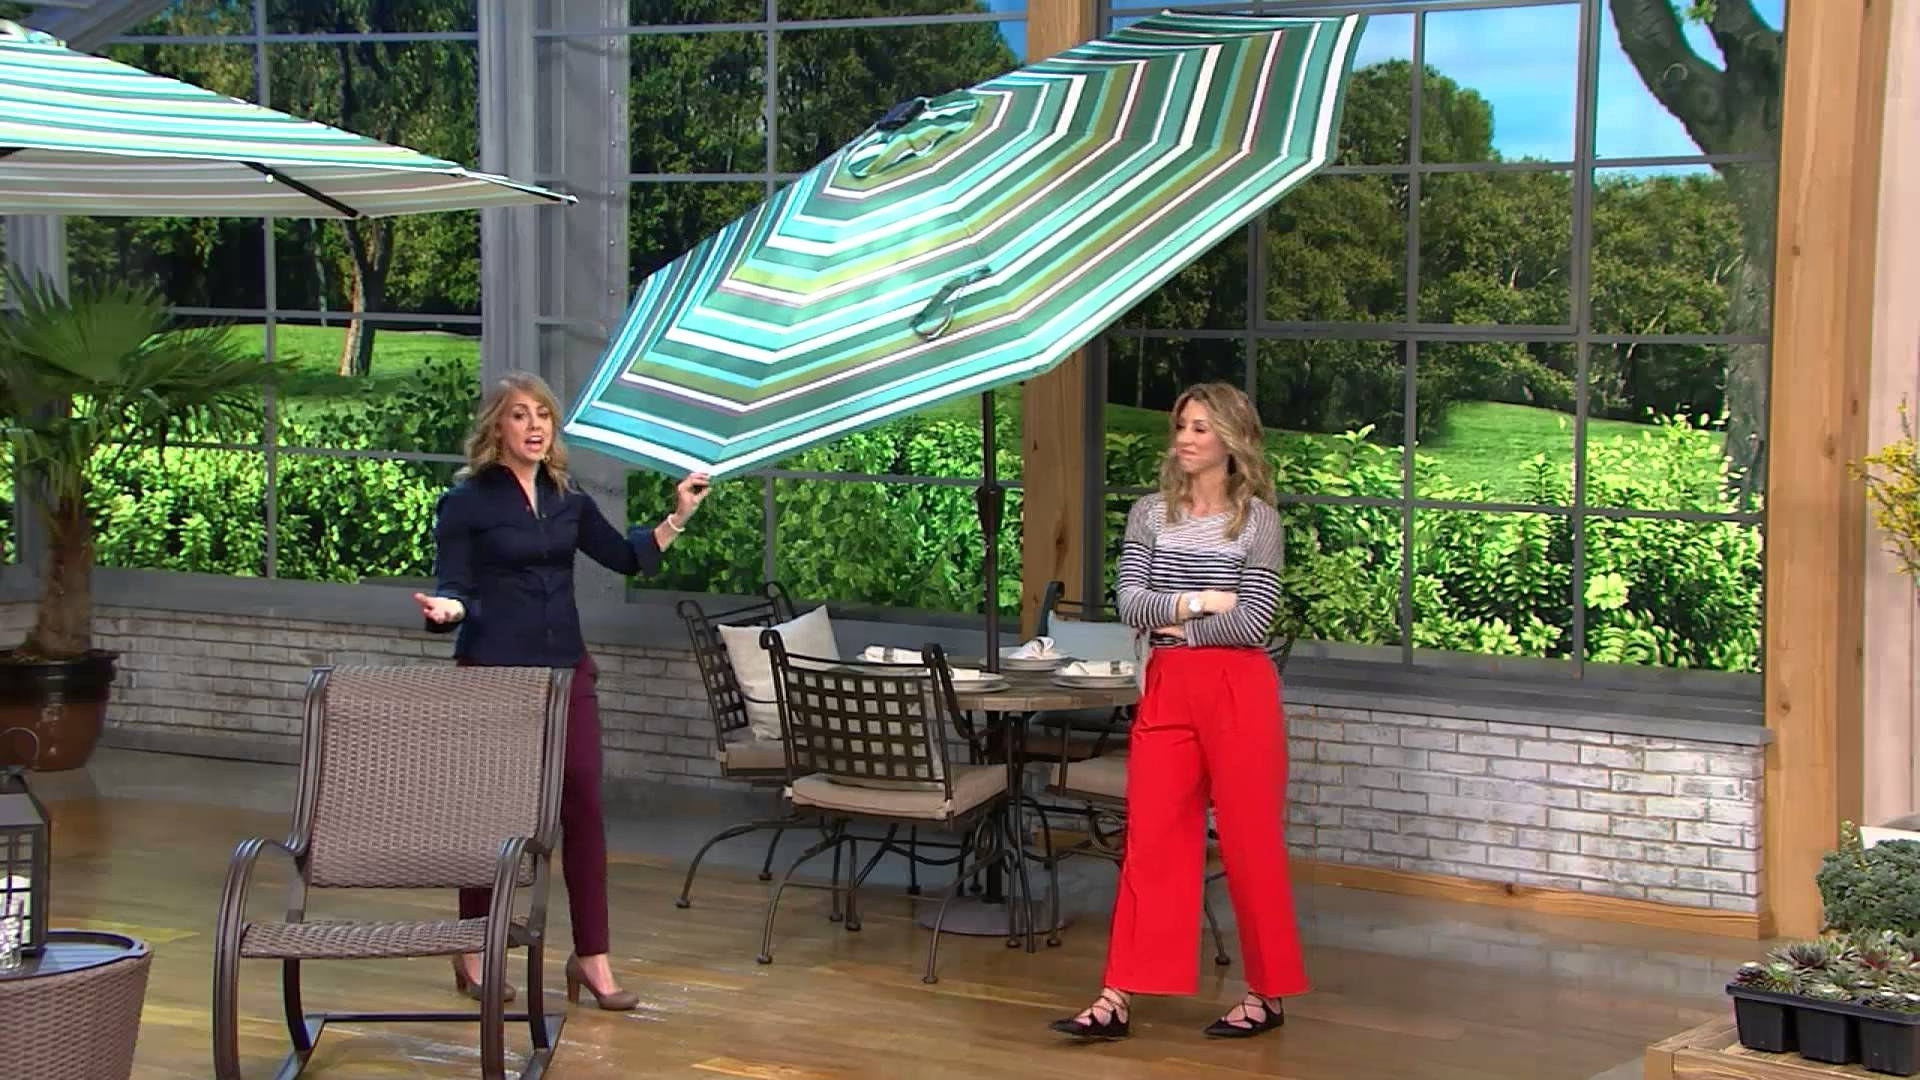 Favorite Atleisure 9' Light Solar Patio Umbrella With 44 Led's And Cover On Pertaining To Patio Umbrellas With Solar Lights (View 7 of 20)